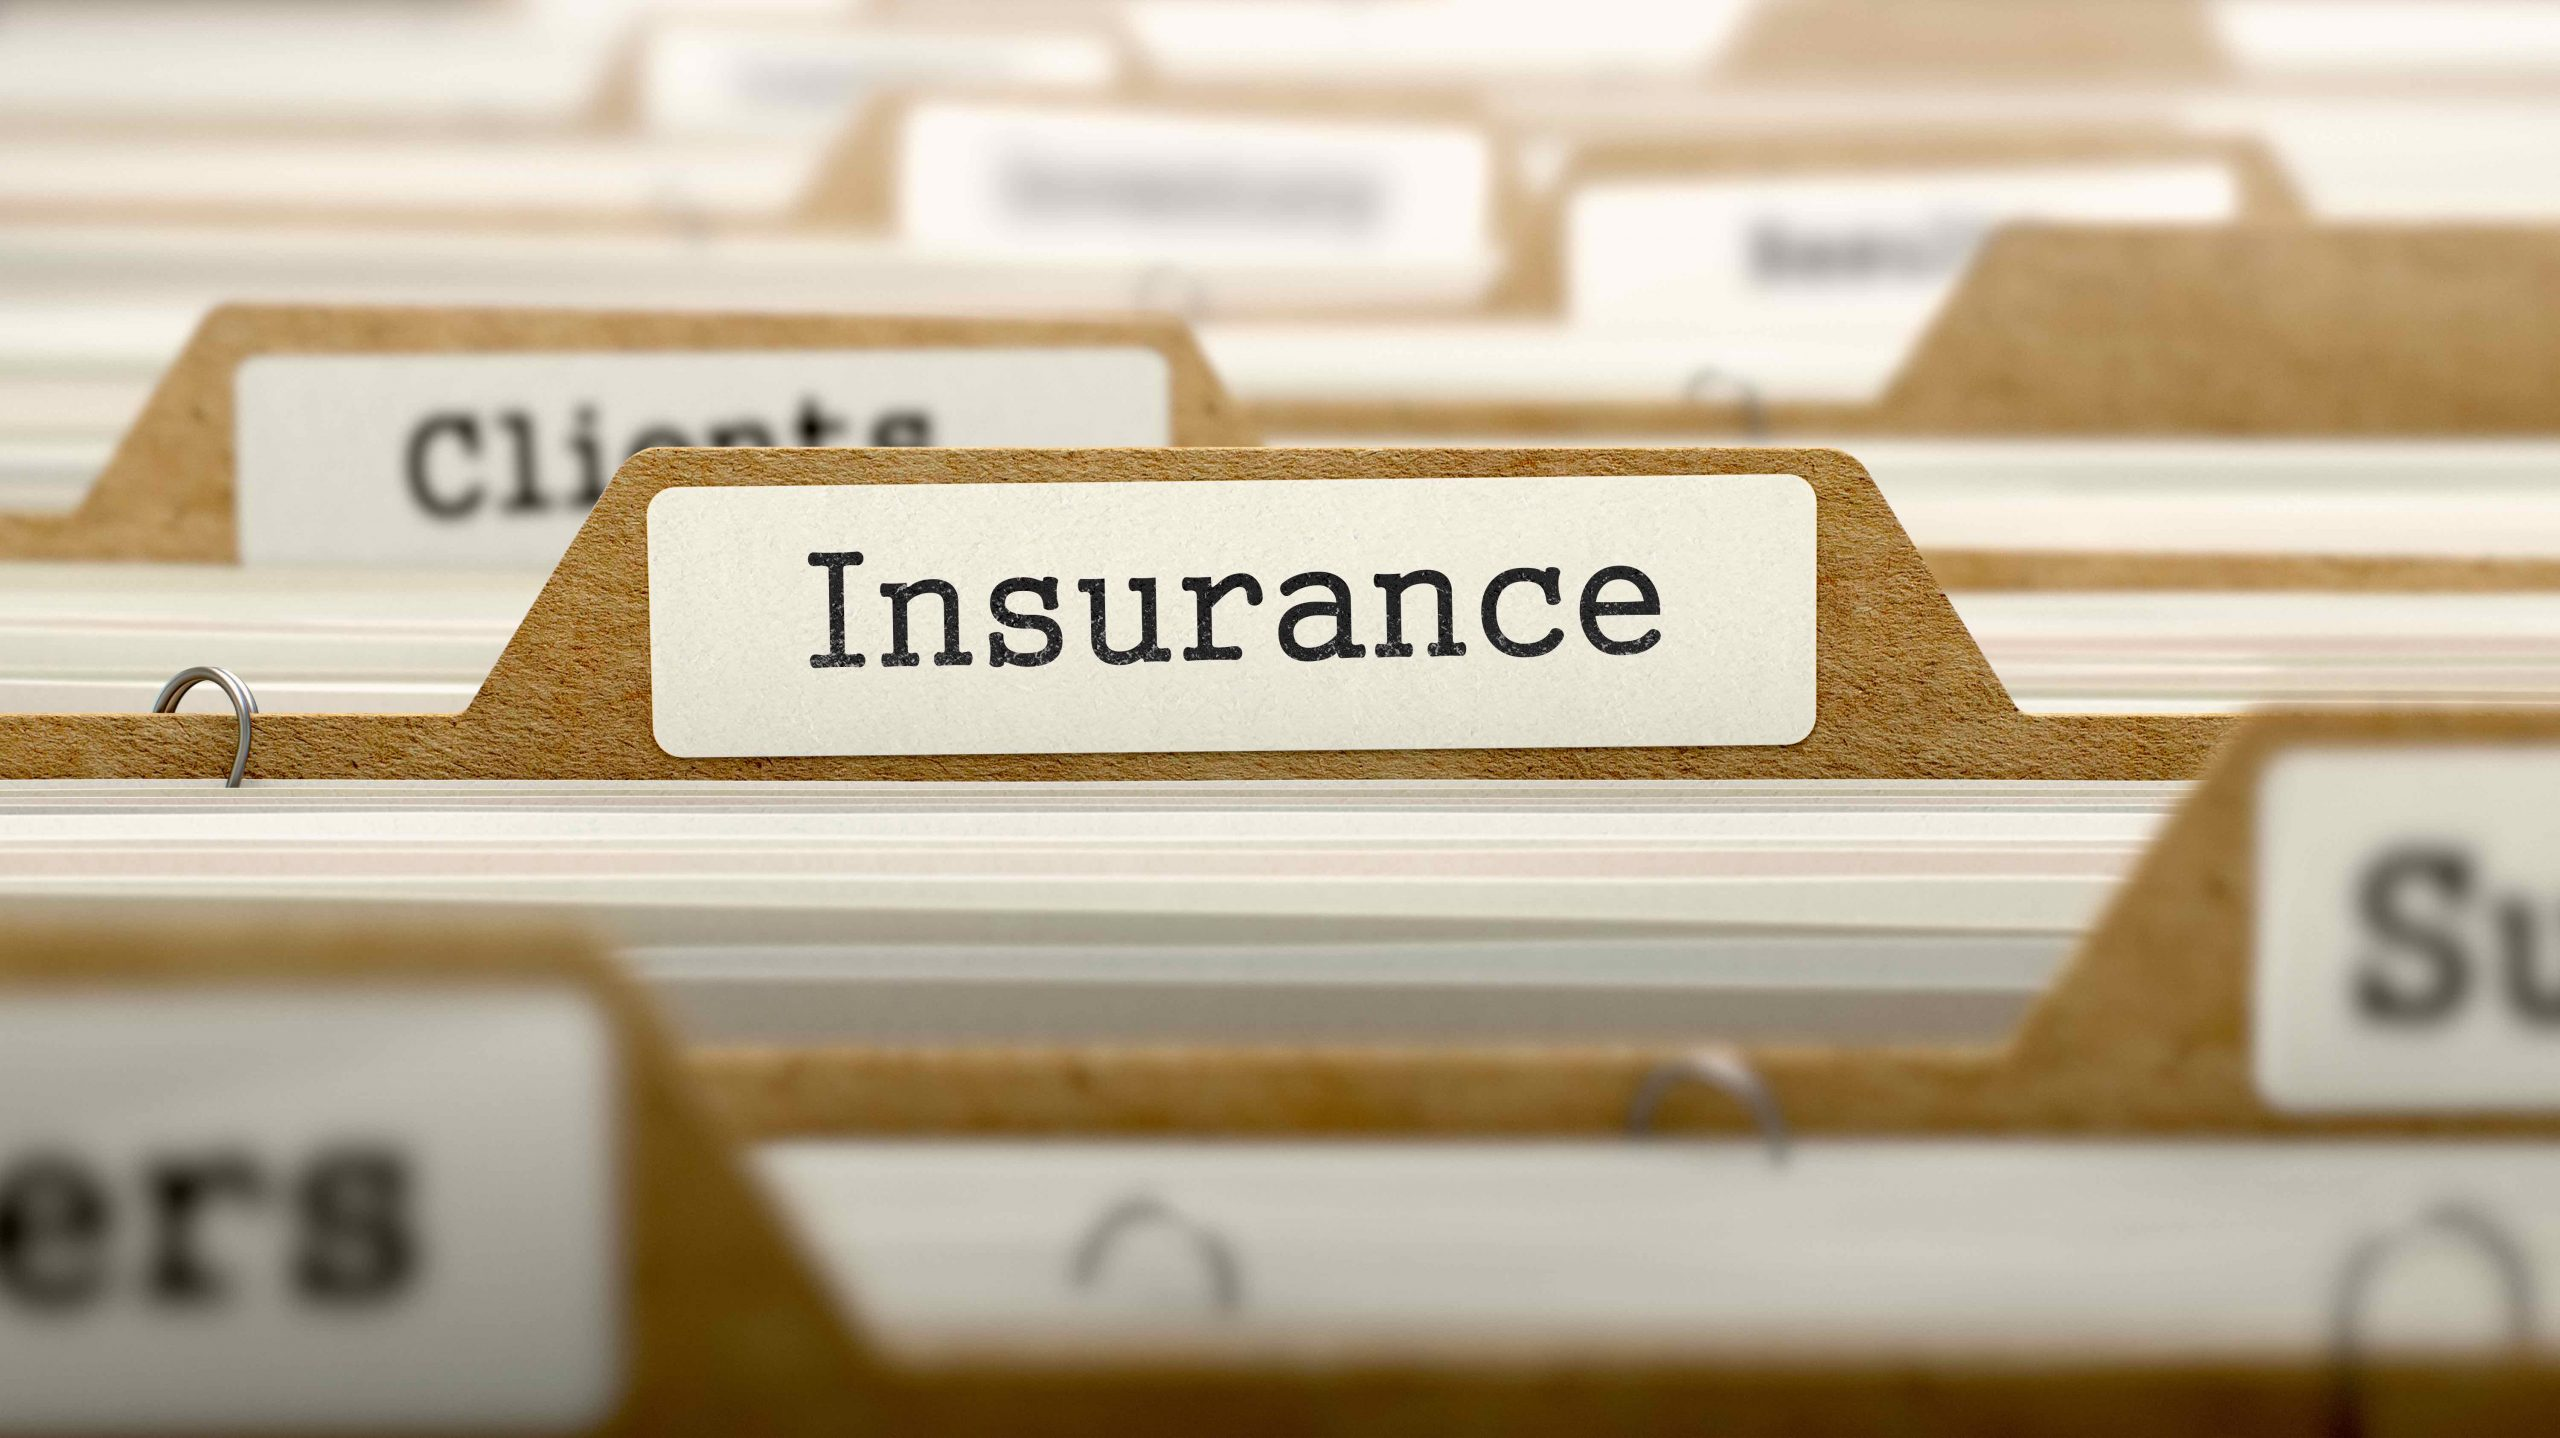 Covid-19 Insurance Payments